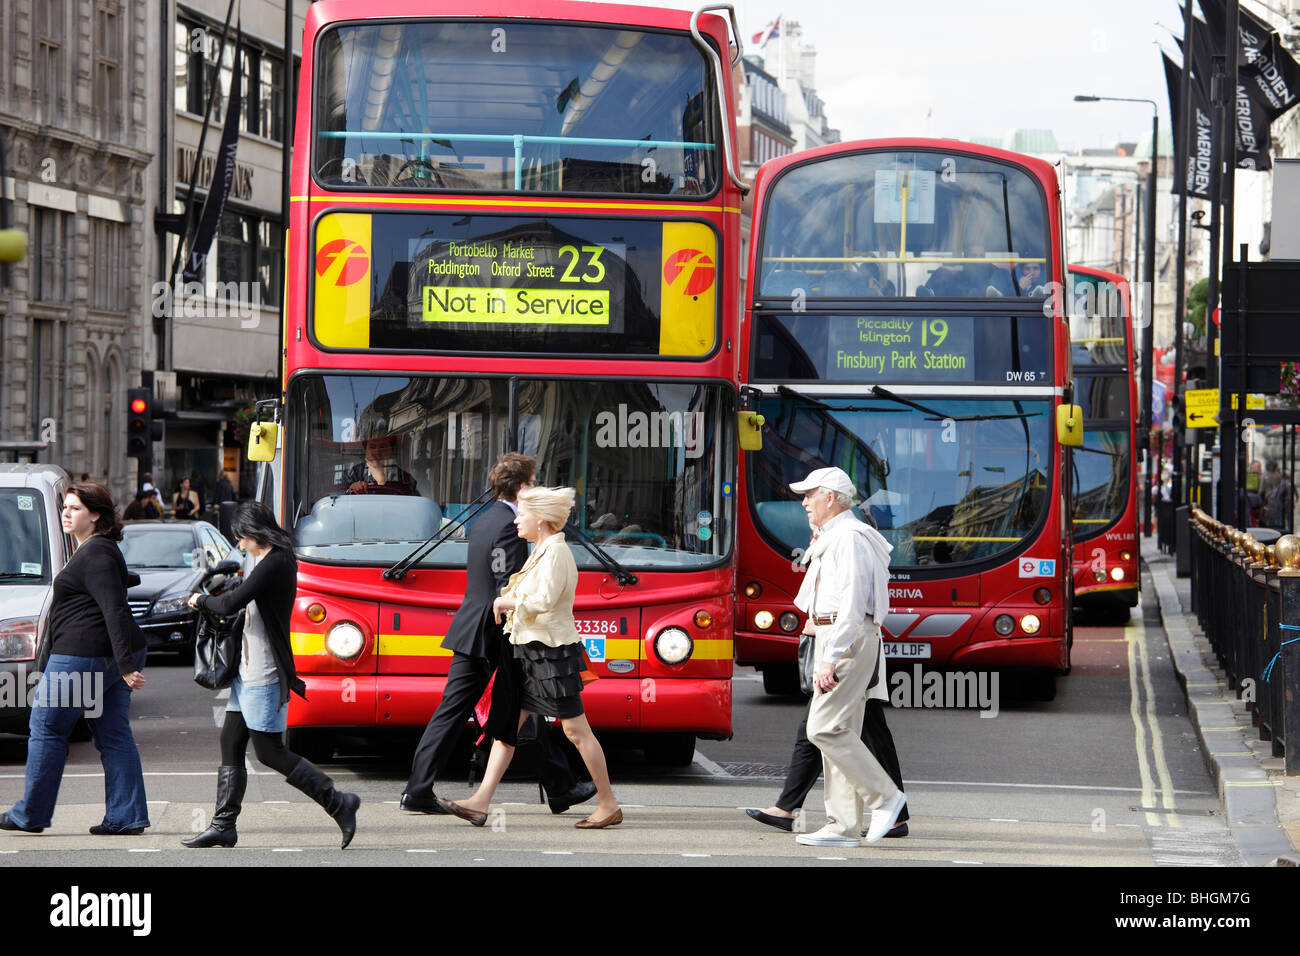 Pedestrians and busses in Picadilly, London - Stock Image